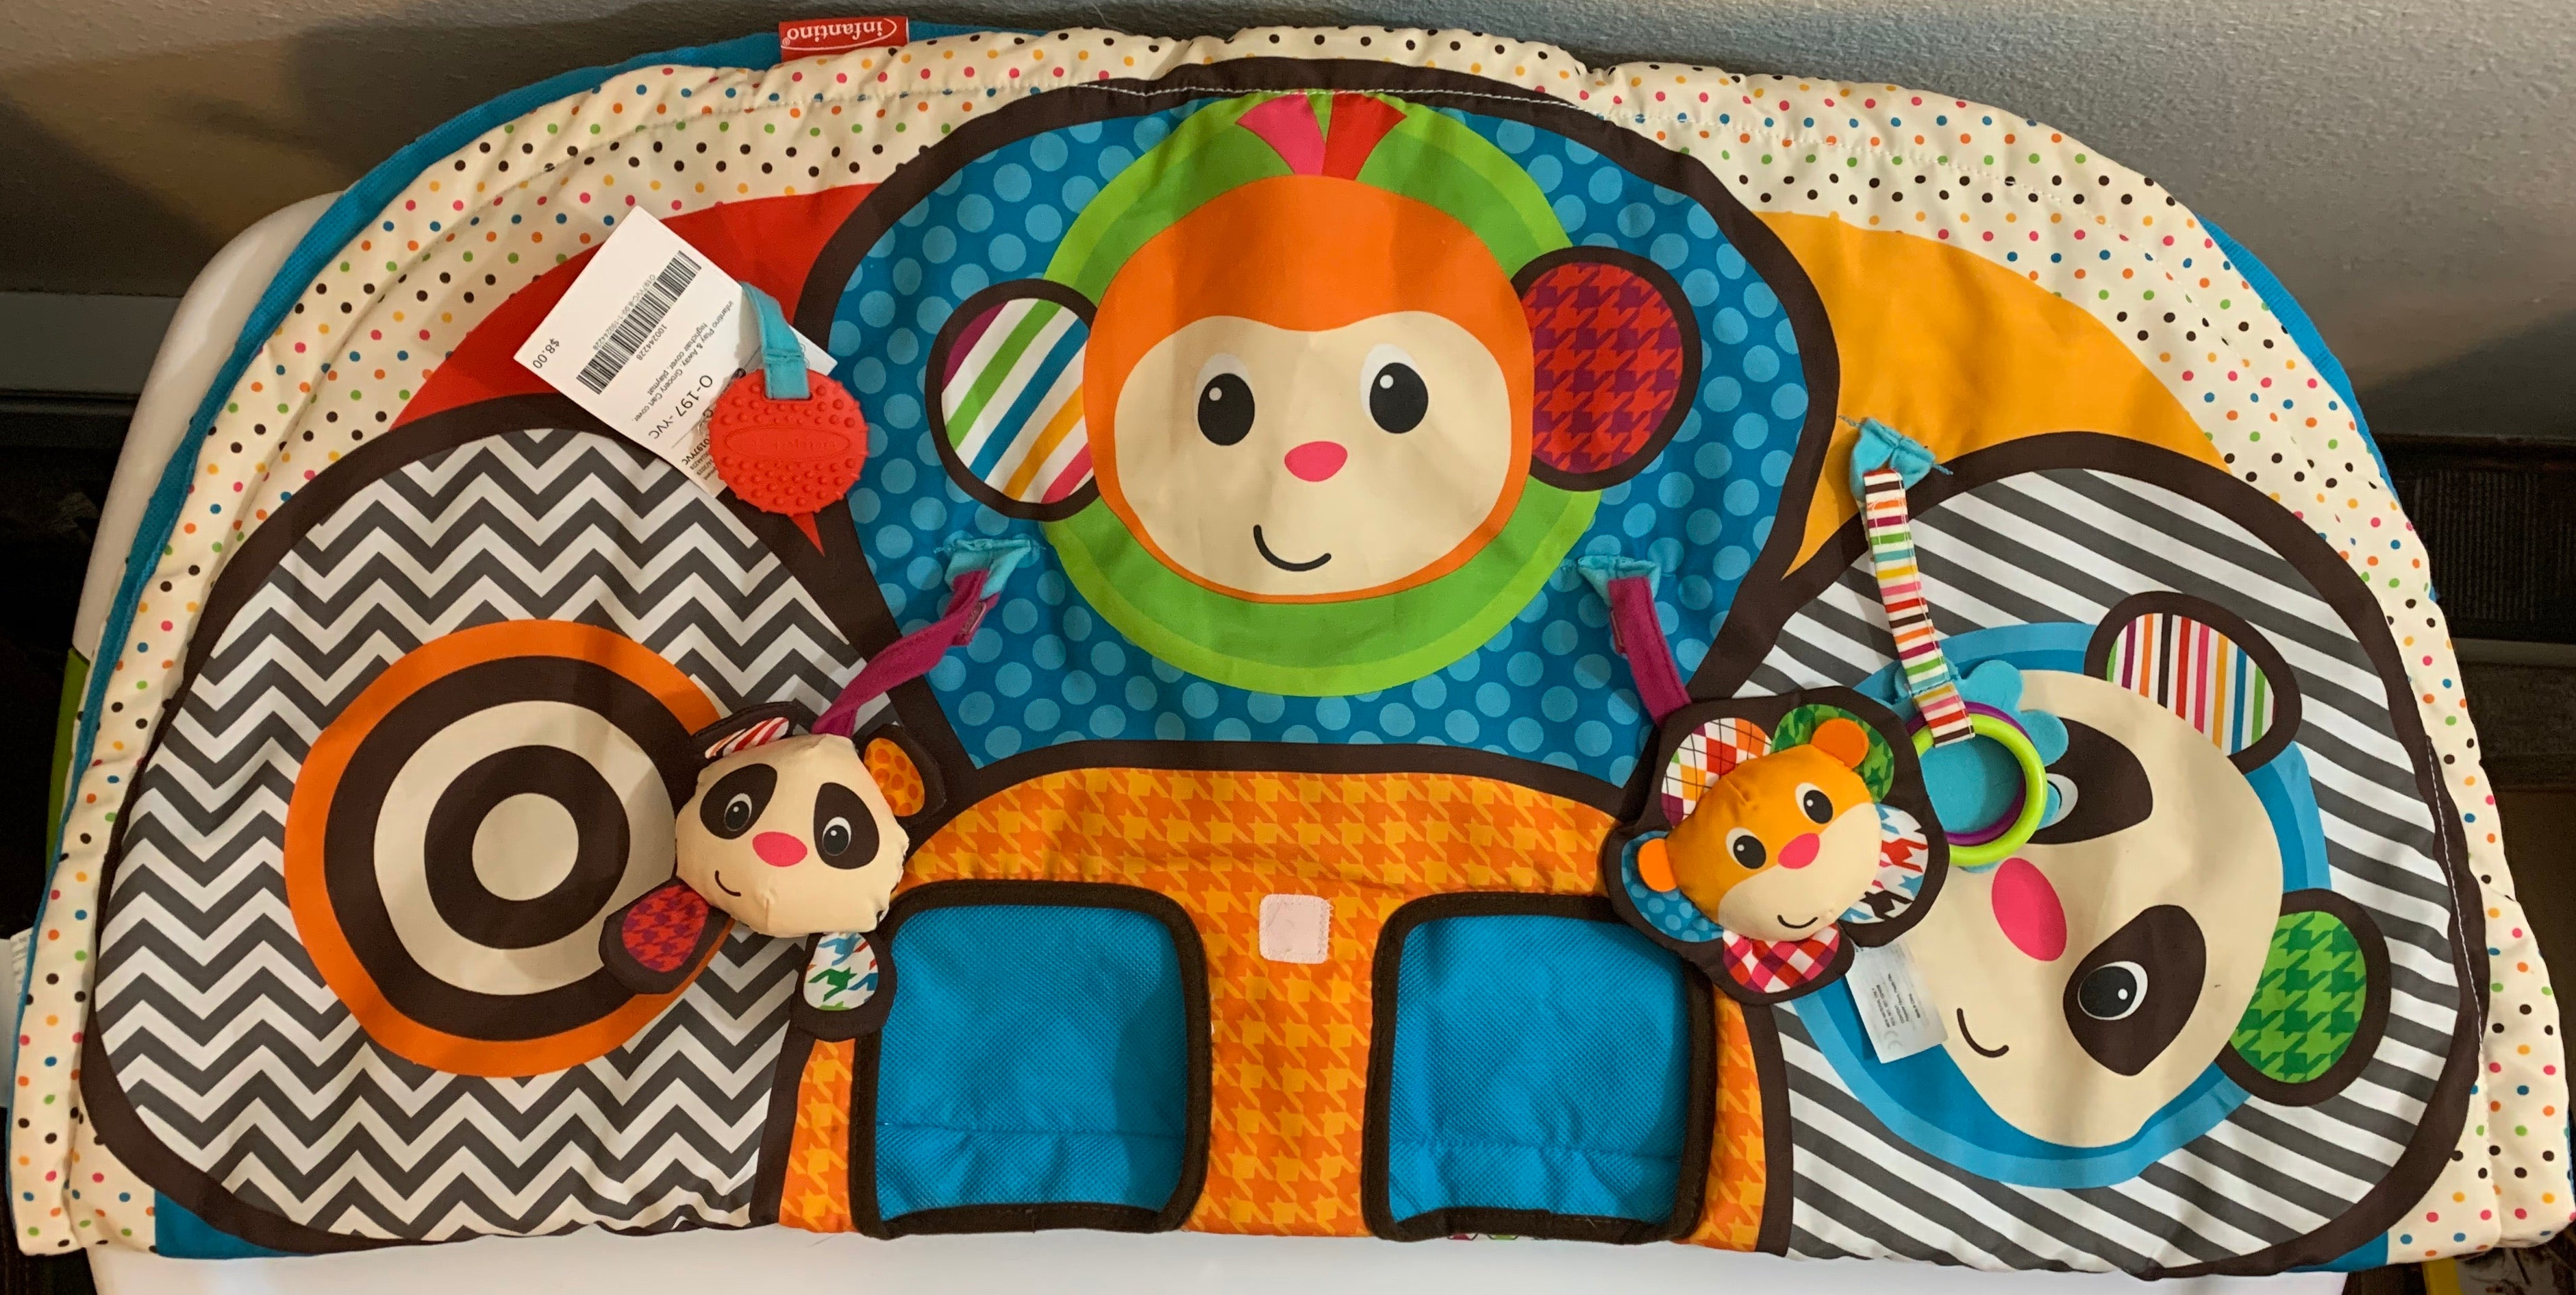 Infantino Play & Away Grocery Cart Cover, Highchair Cover, Playmat